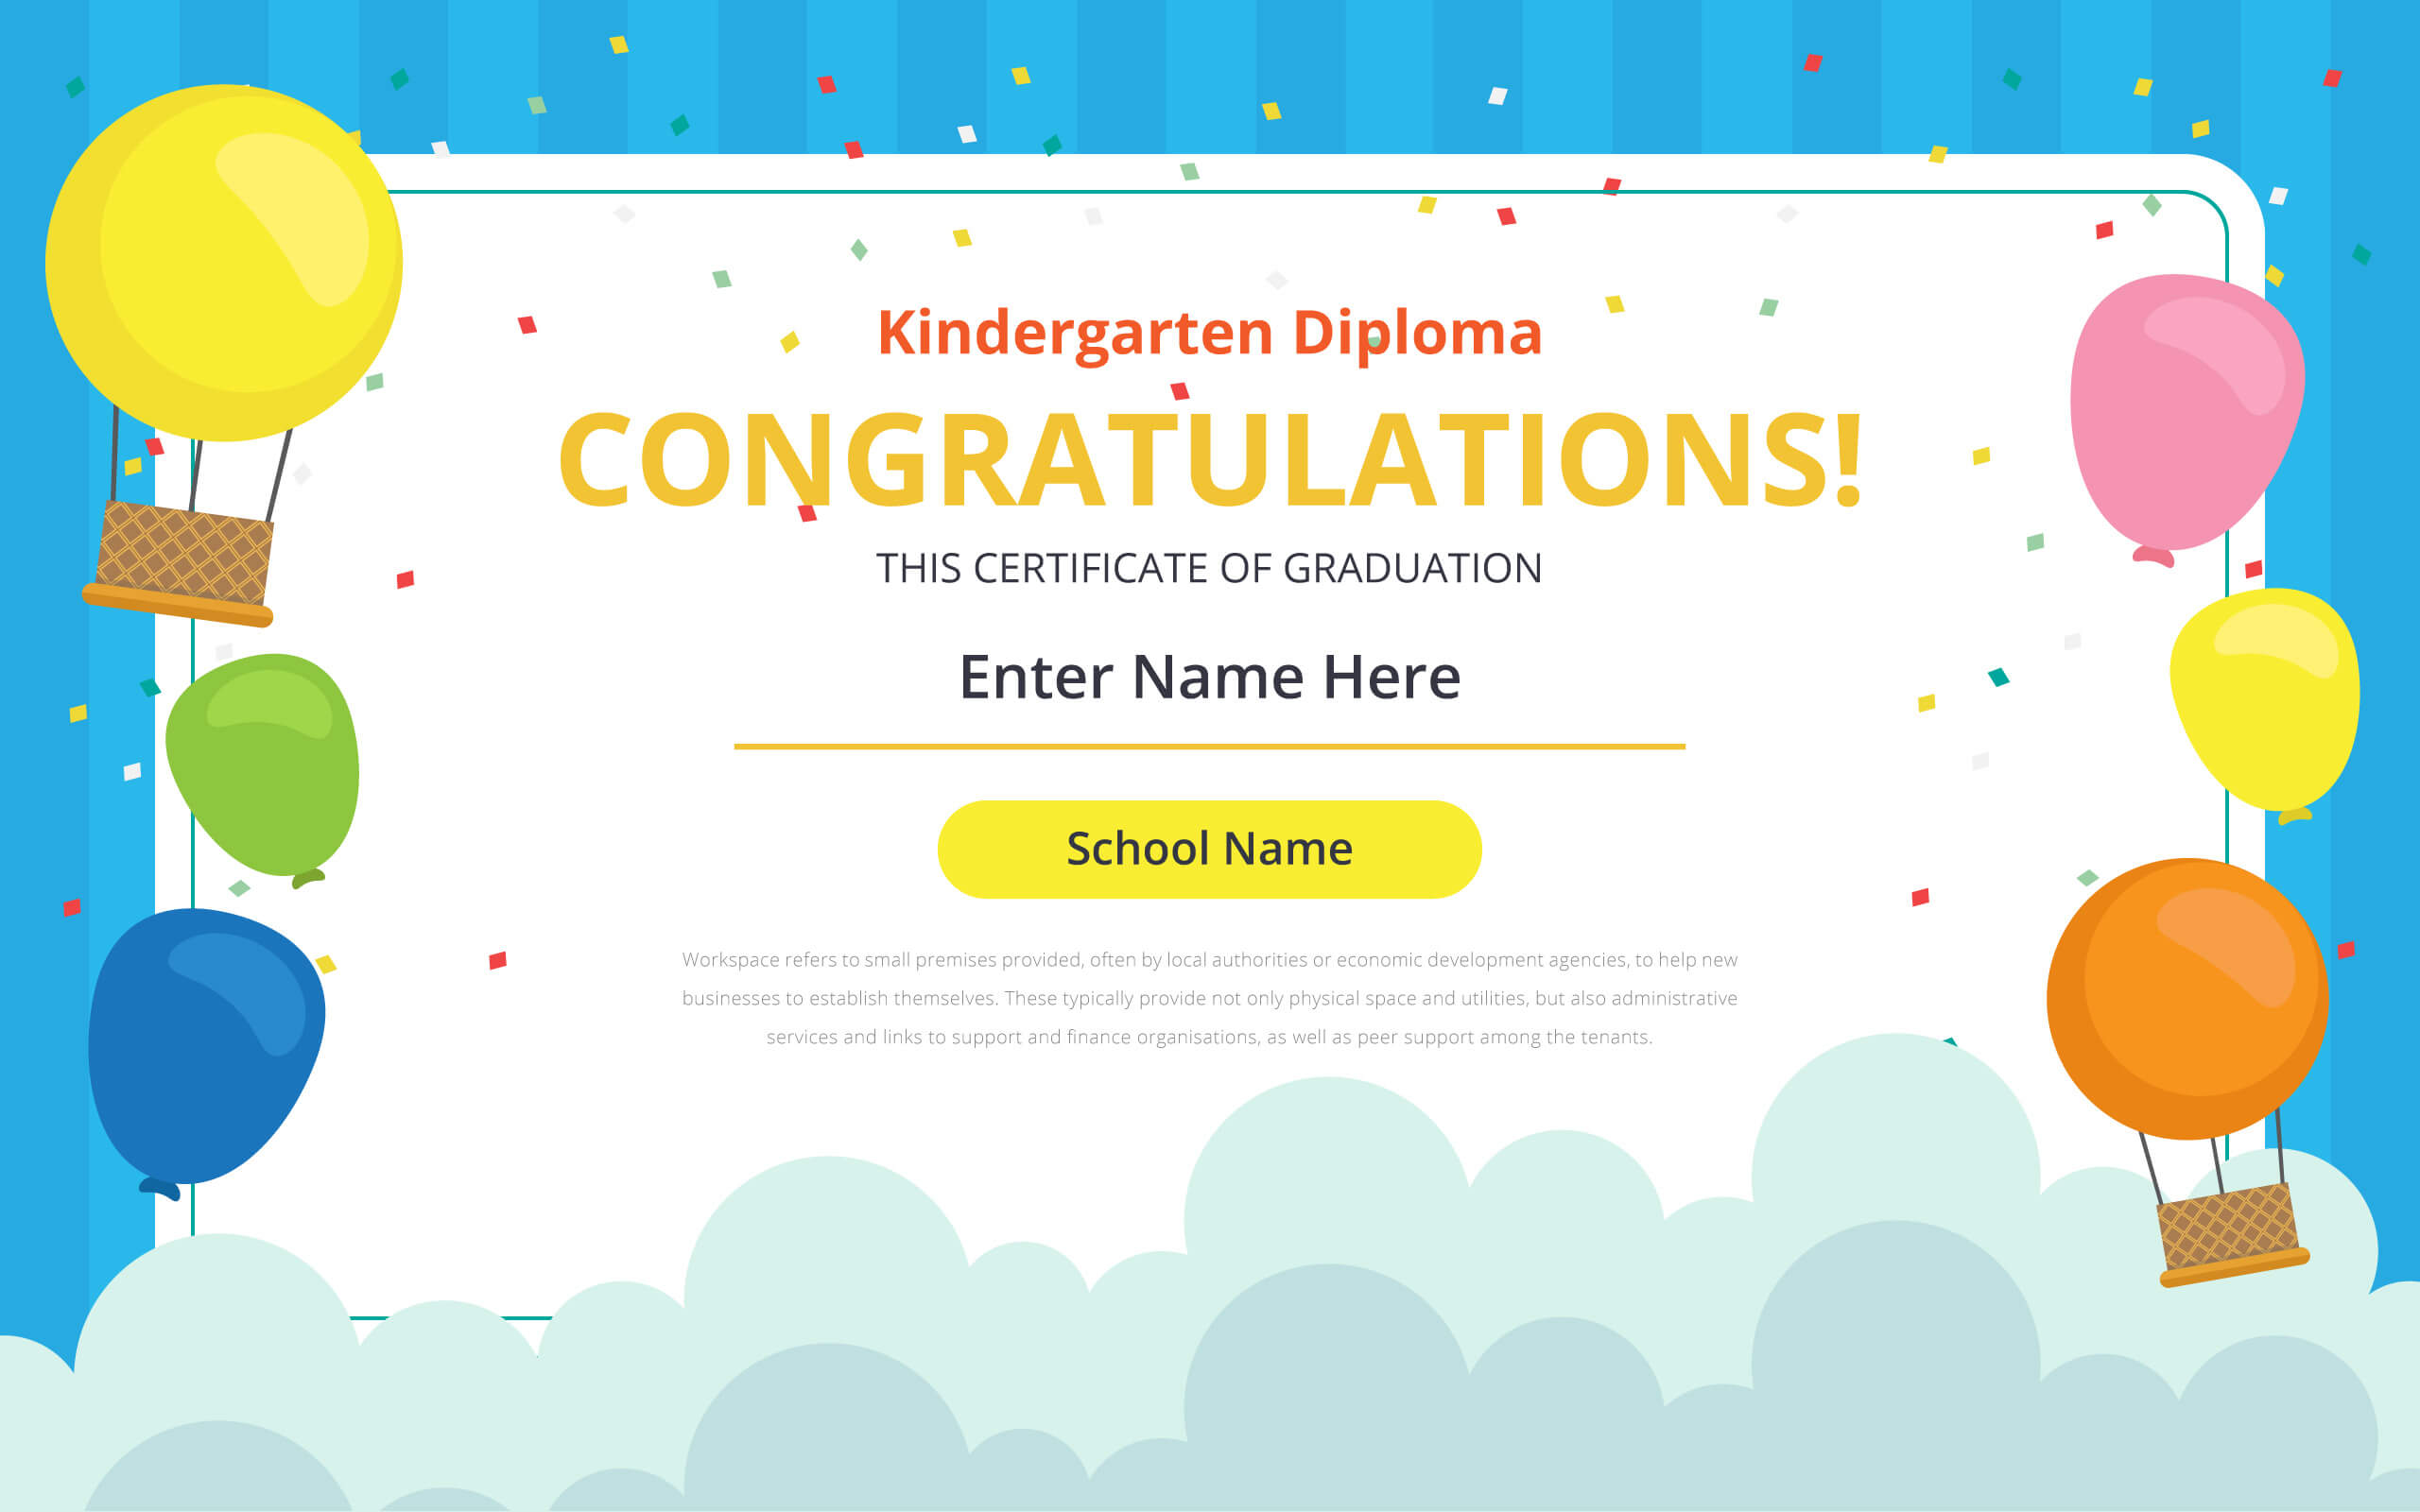 Kindergarten Certificate Free Vector Art - (21 Free Downloads) Inside Small Certificate Template